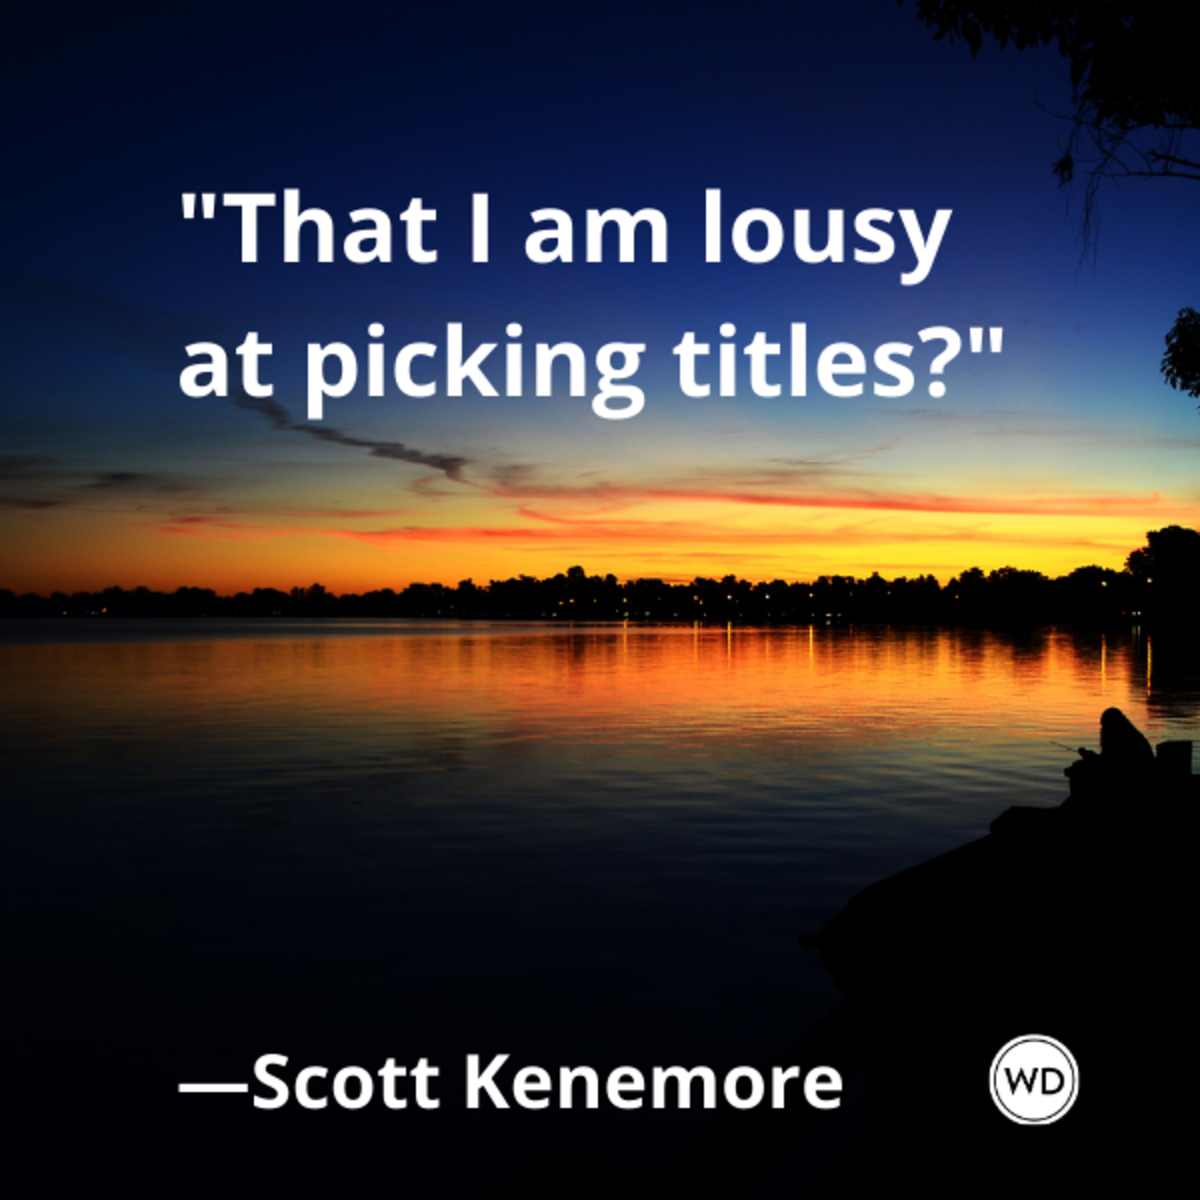 scott_kenemore_quotes_that_i_am_lousy_at_picking_titles